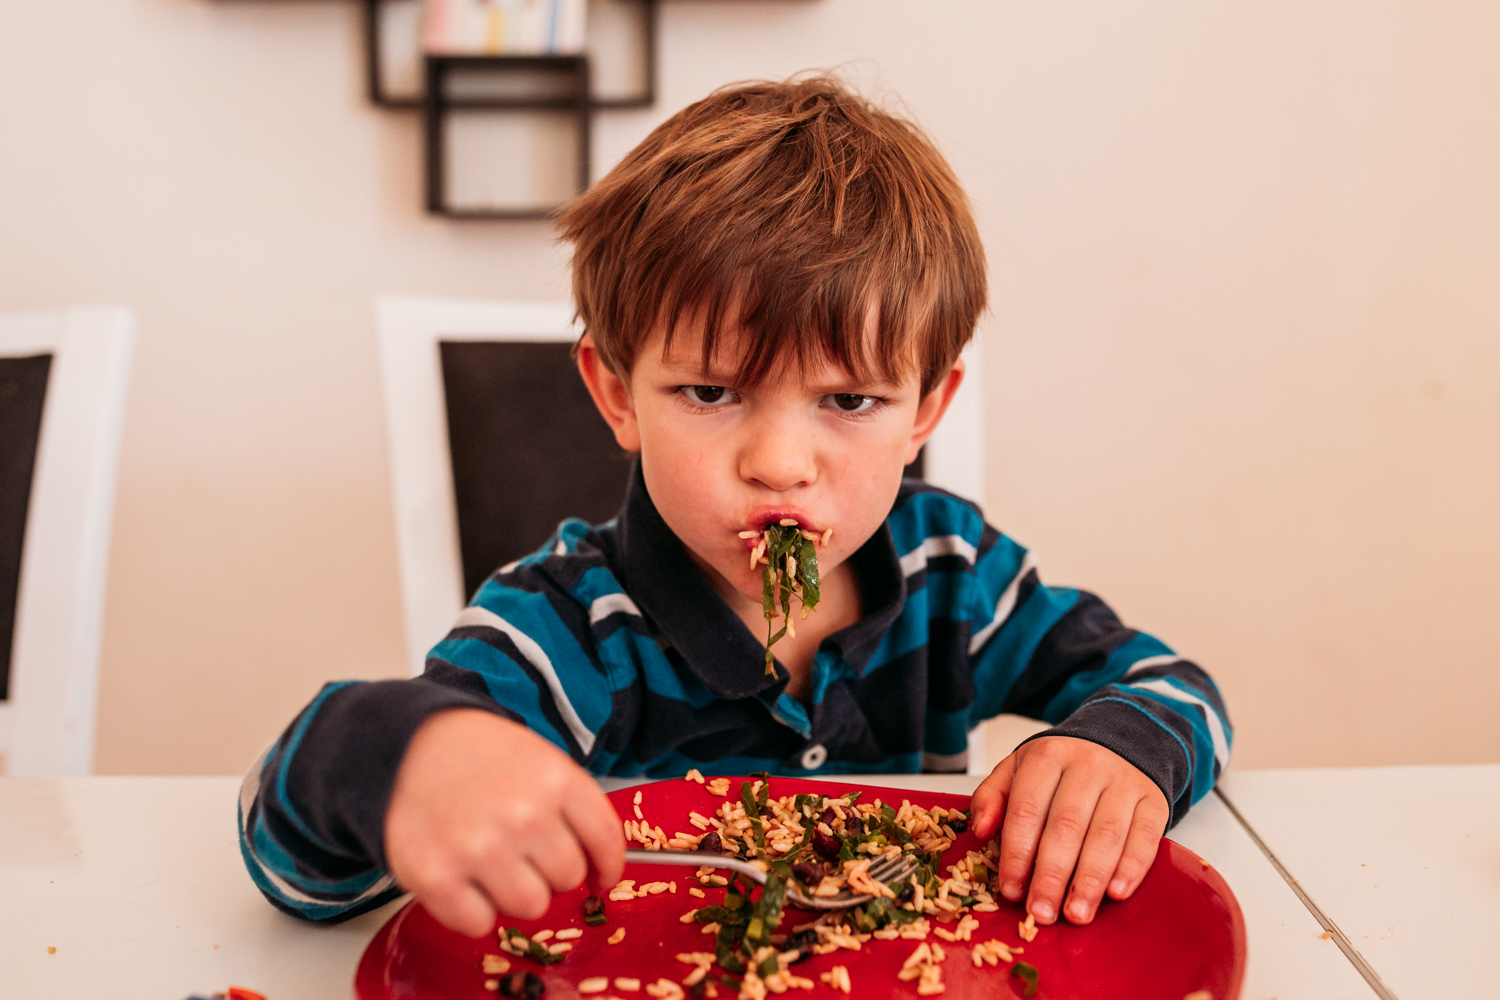 5 year old boy eating lunch, stuffing his face with food coming out of his mouth